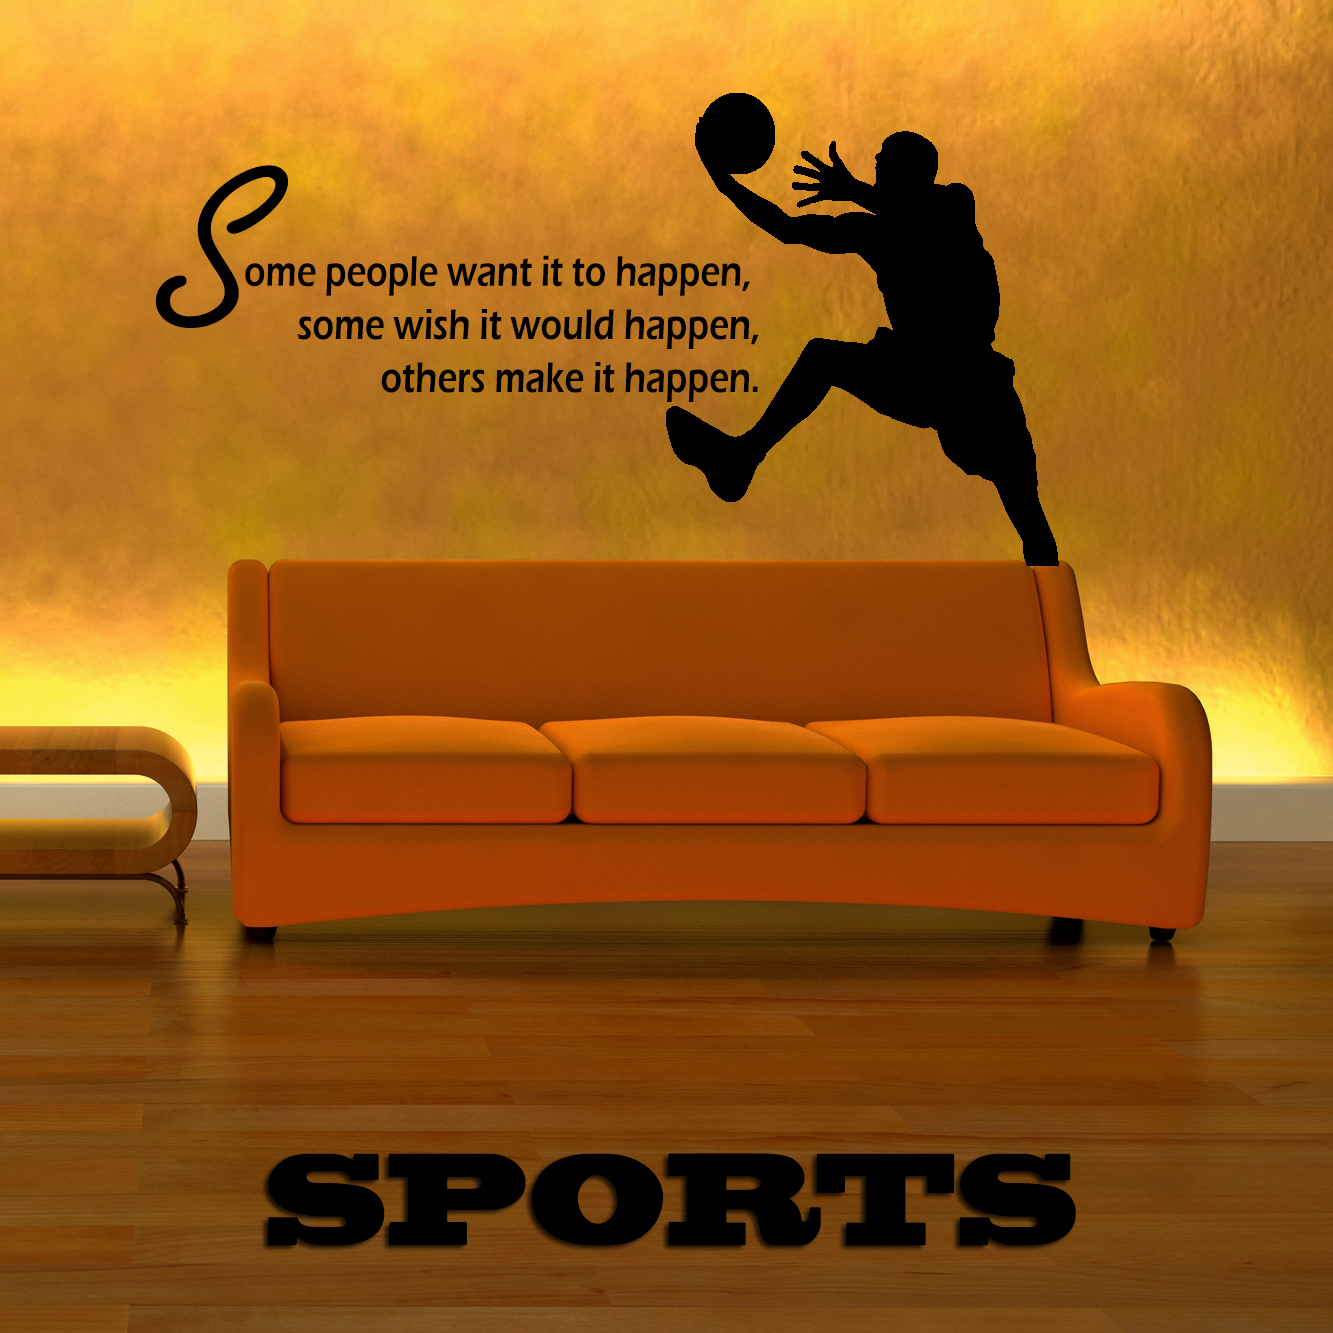 sports and character The traditionally-held notion that athletes build character through their  participation in sports is something that certainly seems debatable based.